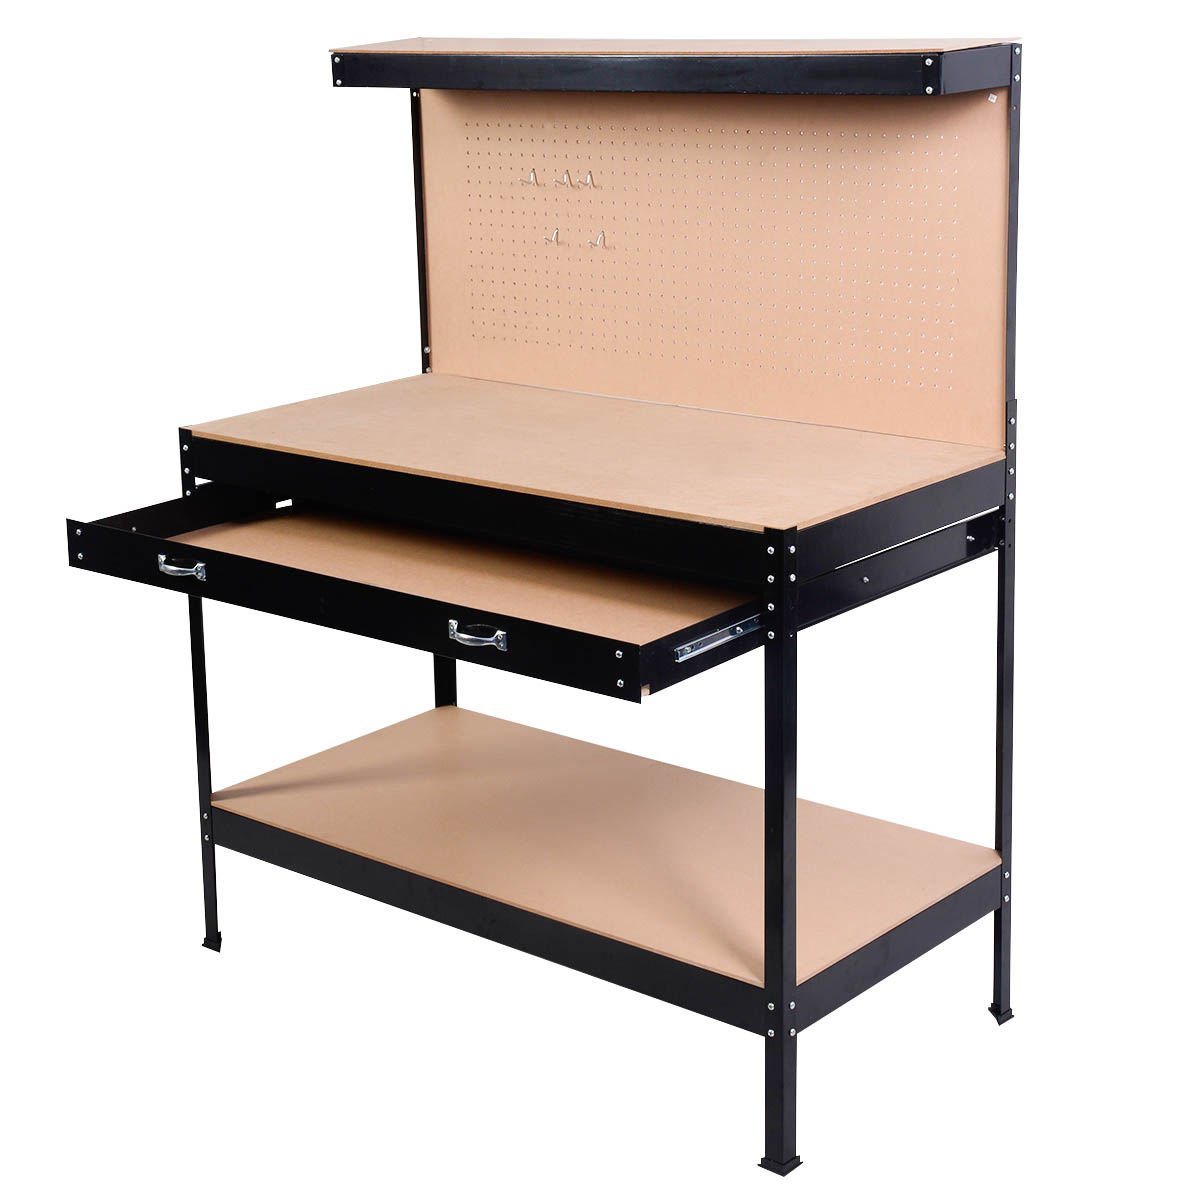 Work Bench Tool Storage Steel Frame Tool Workshop Table W/ Drawer and Peg Boar by allgoodsdelight365 (Image #8)